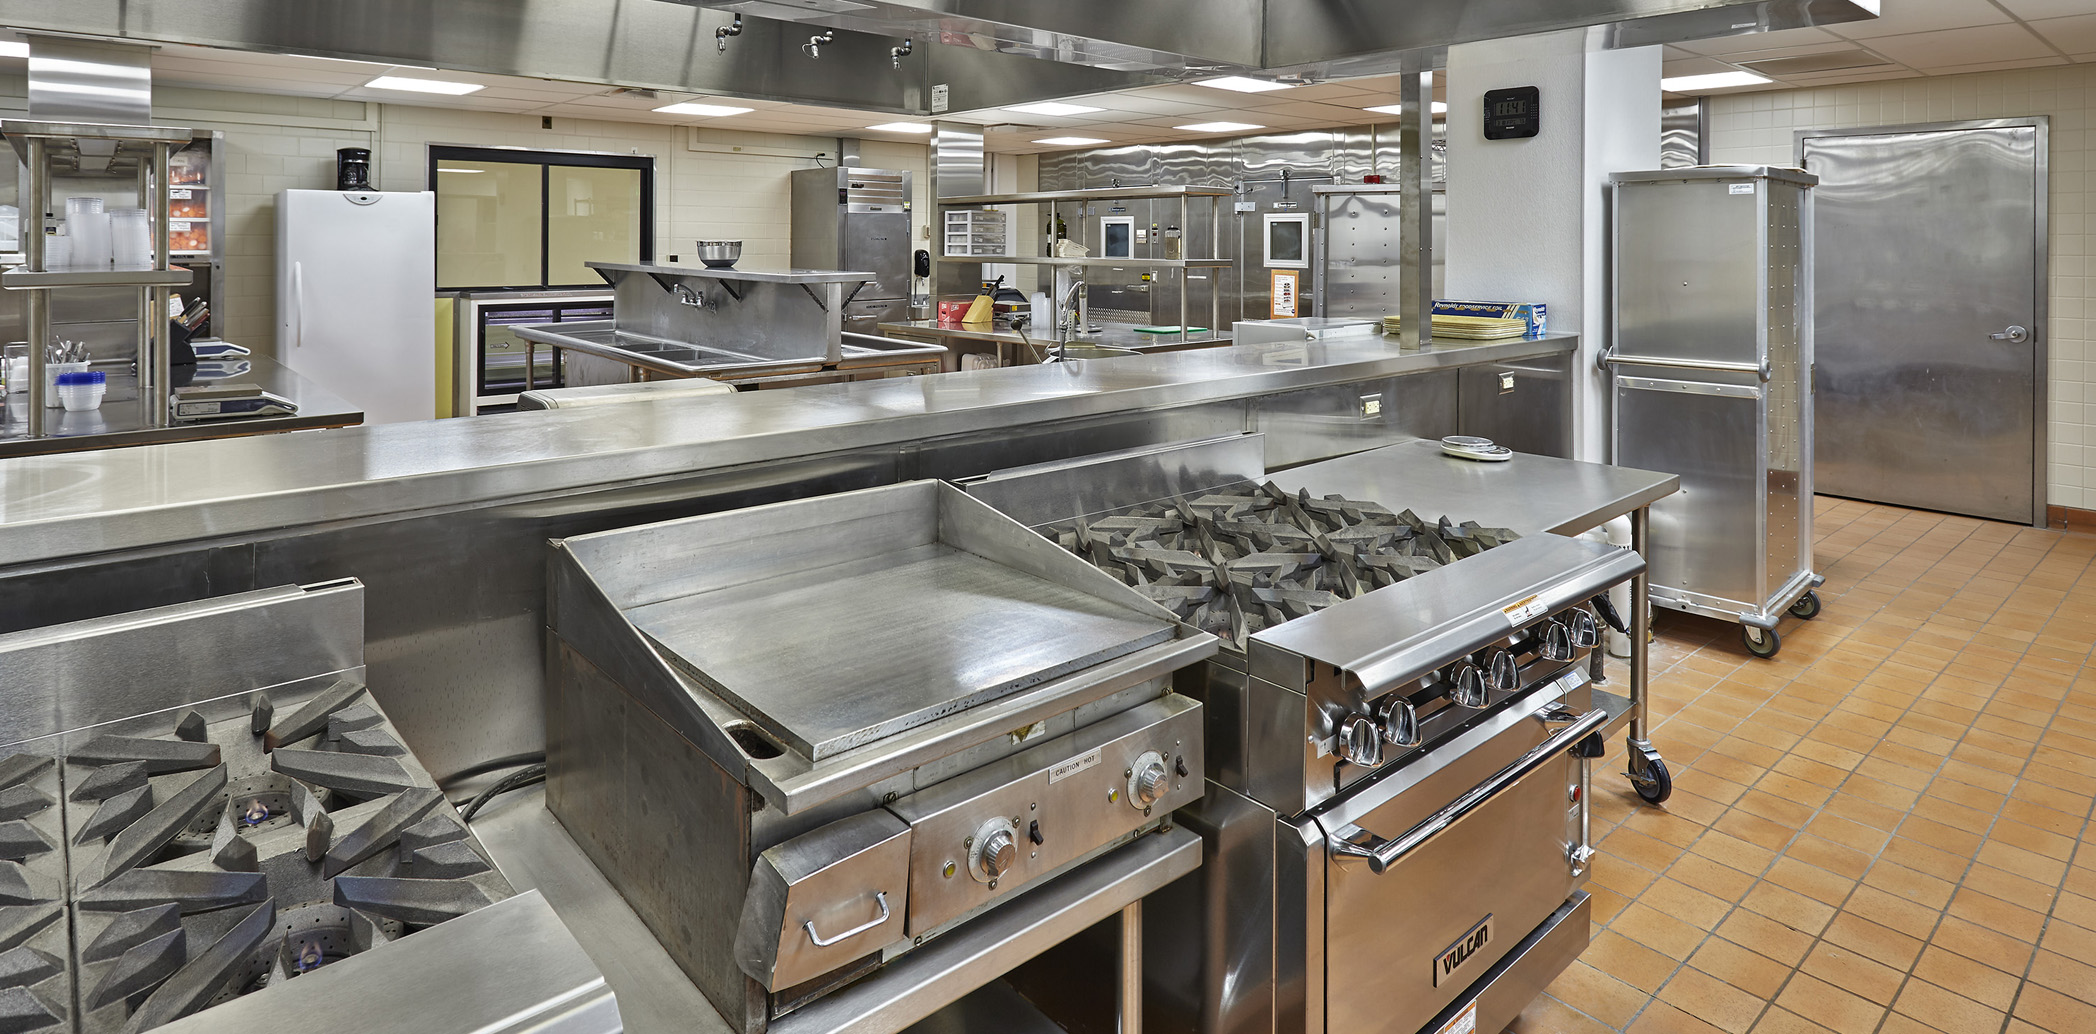 Purdue University Department of Nutrition Science Laboratory Remodel